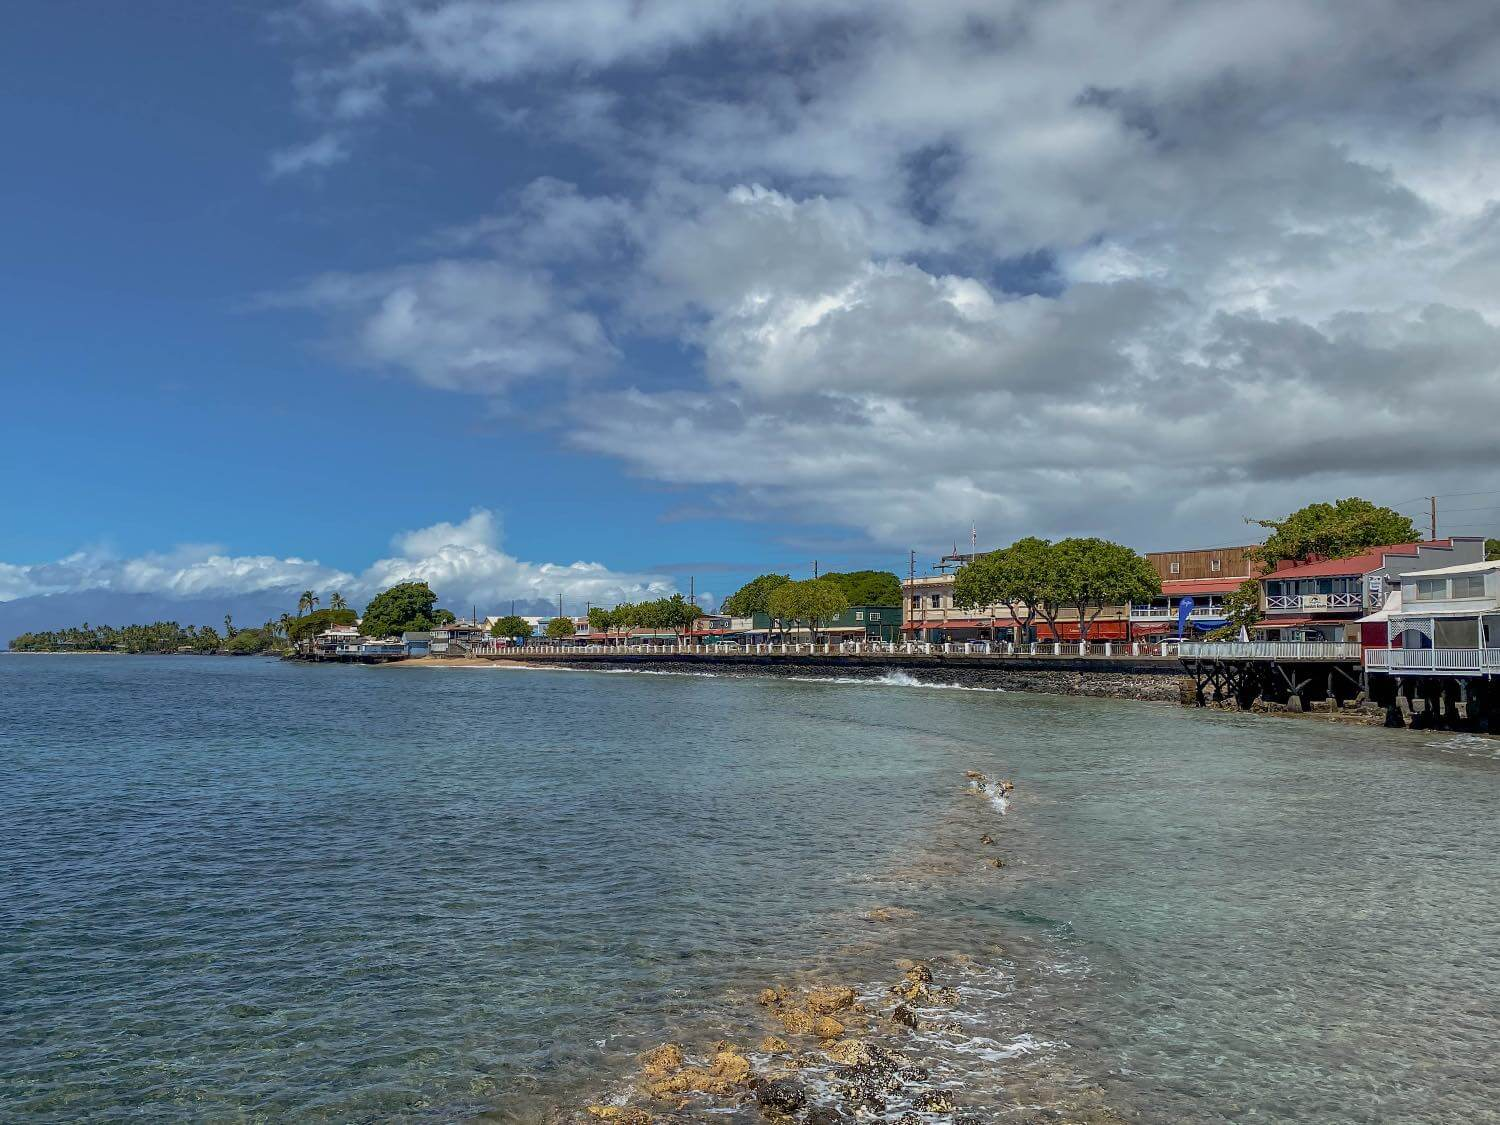 View of Lahaina town in Maui from a distance